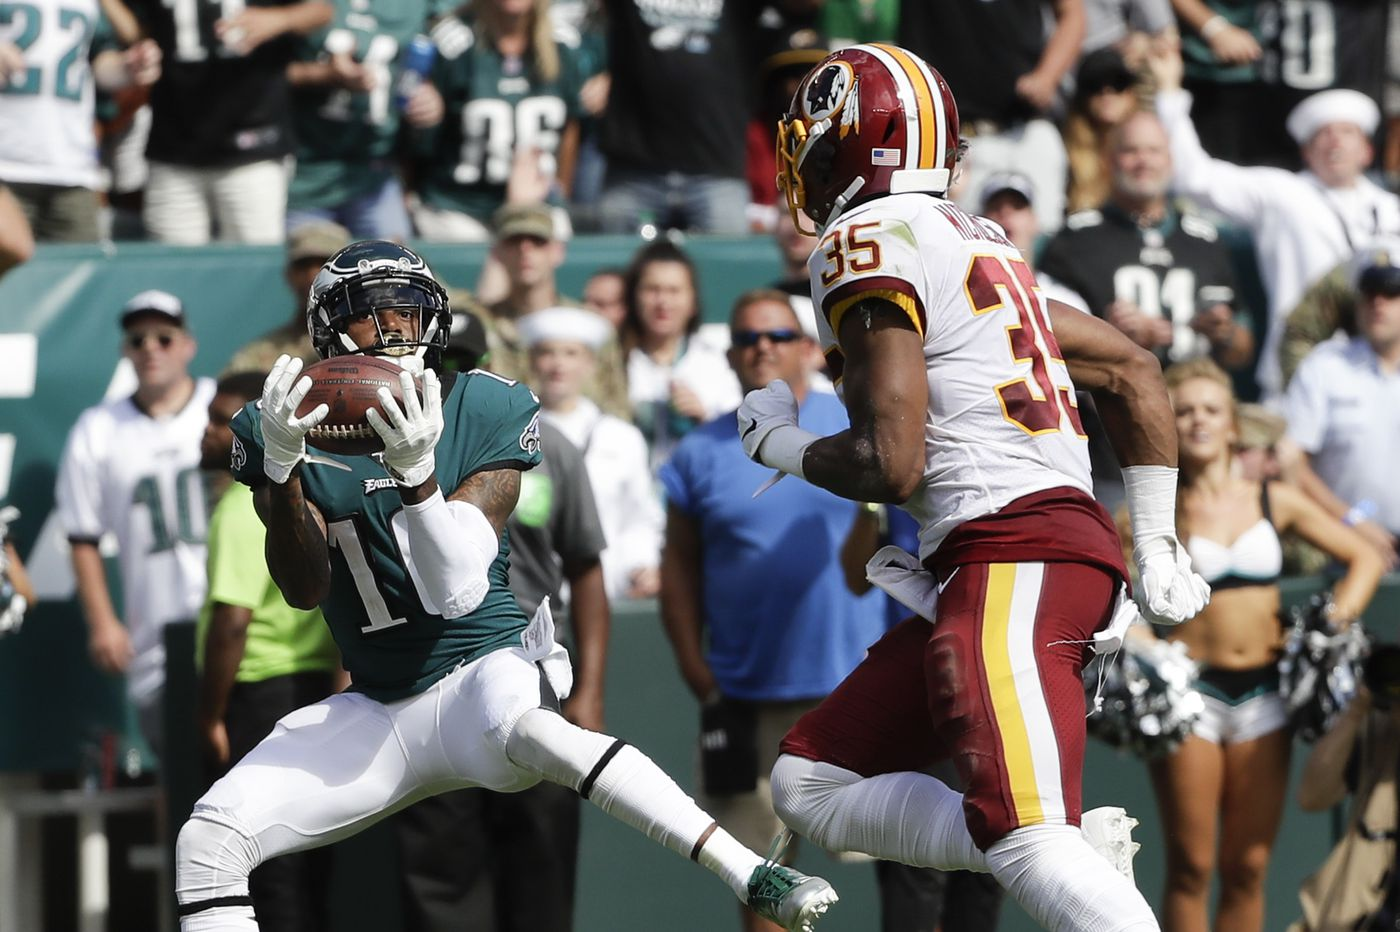 Eagles' Doug Pederson trusted his gambling instincts in win over Redskins | Early Birds